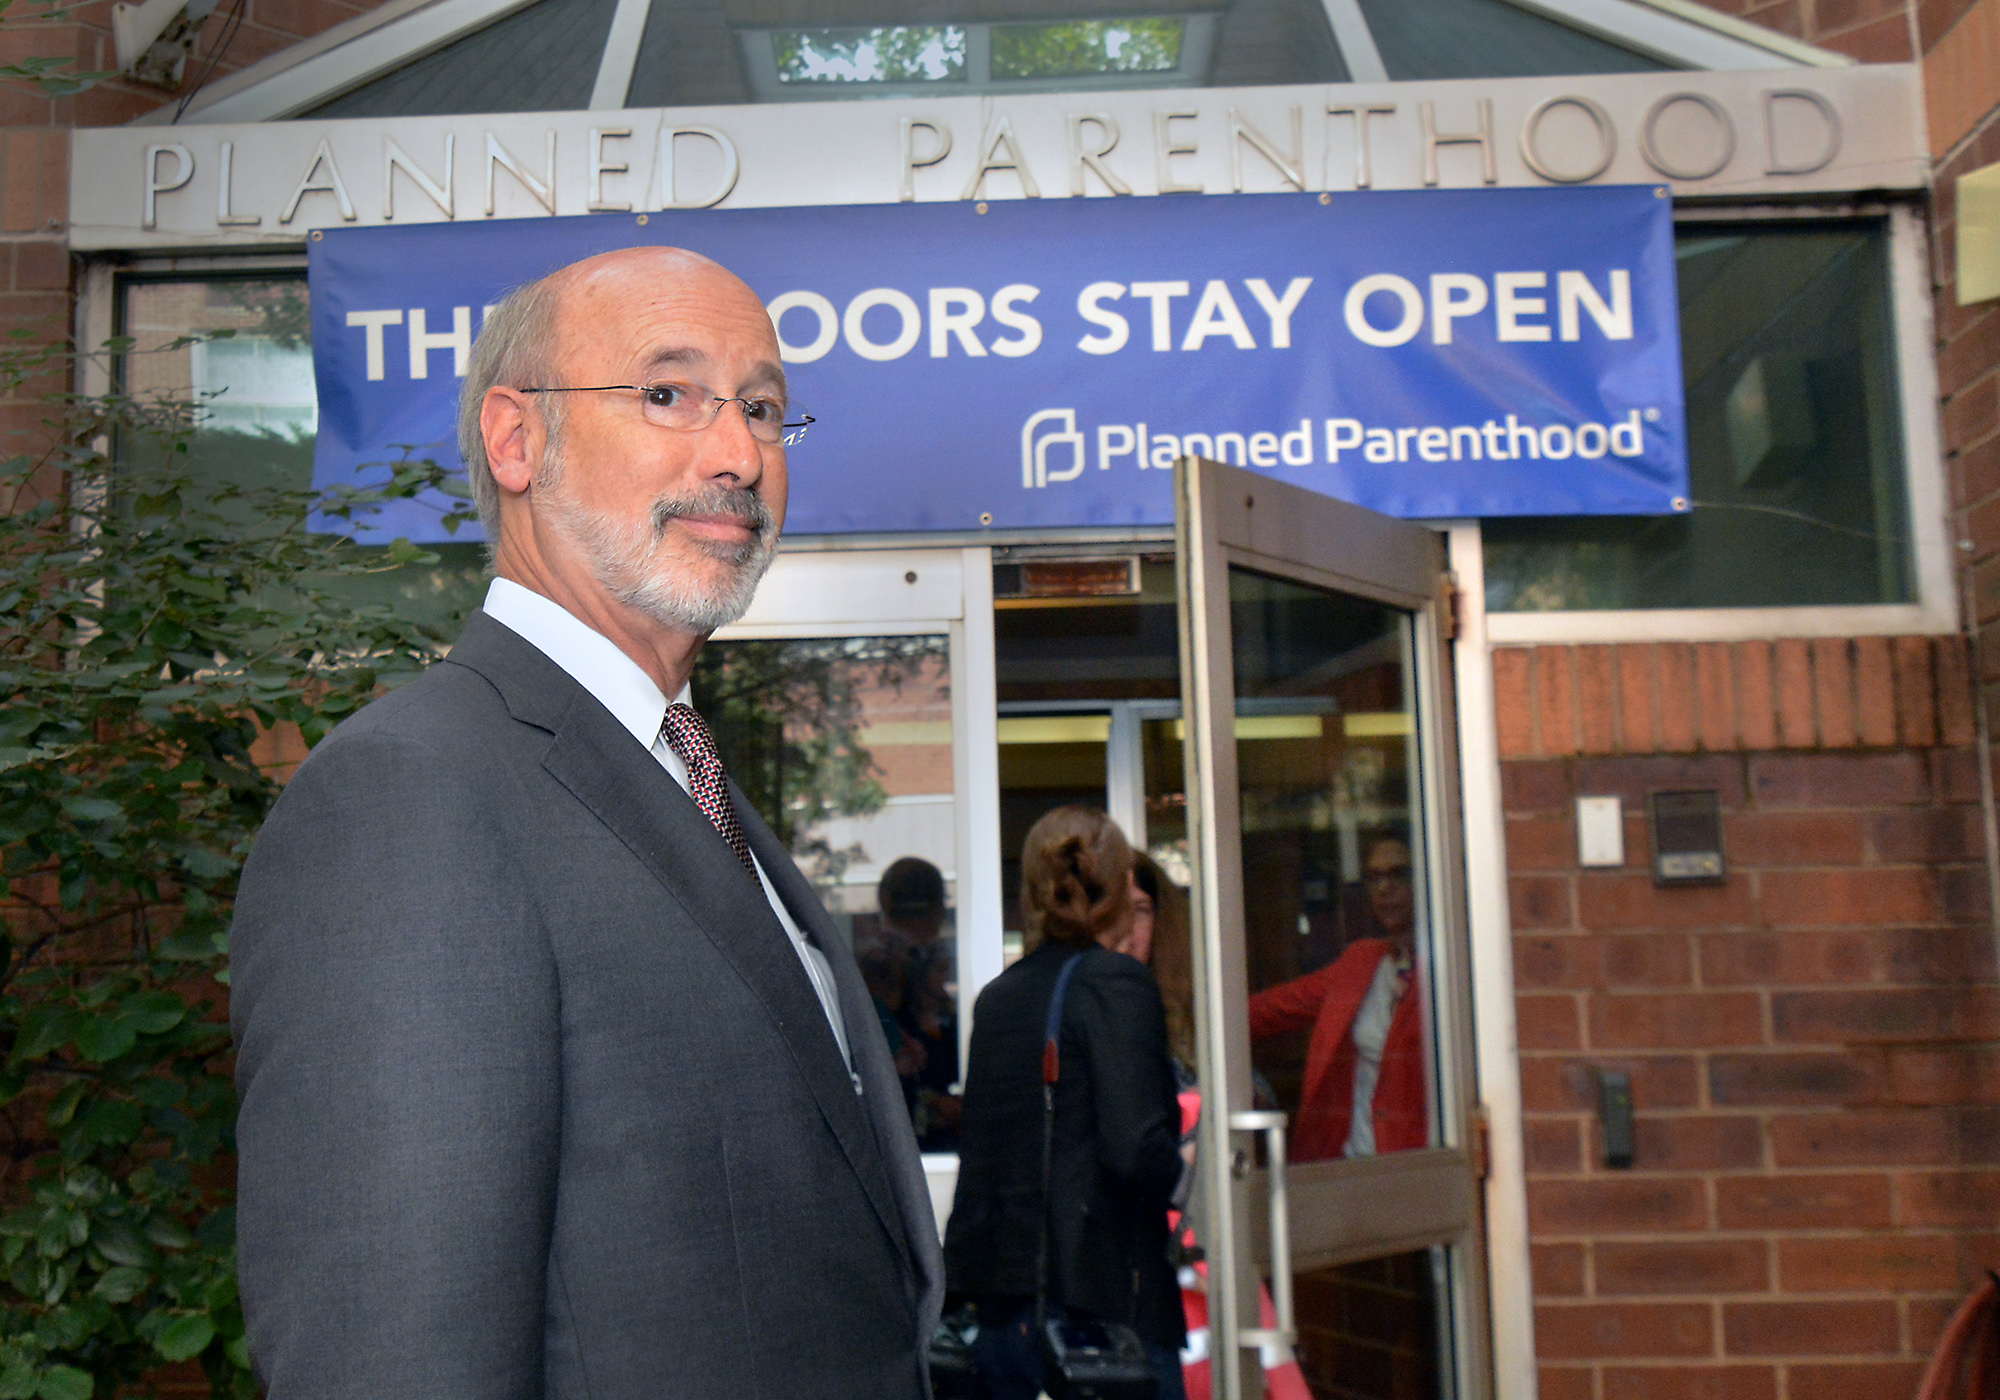 Governor Tom Wolf pauses outside of the Elizabeth Blackwell Health Center at Locust Street in Philadelphia earlier this month. Centers, schools and other county services are about to suffere from lack of a state budget.